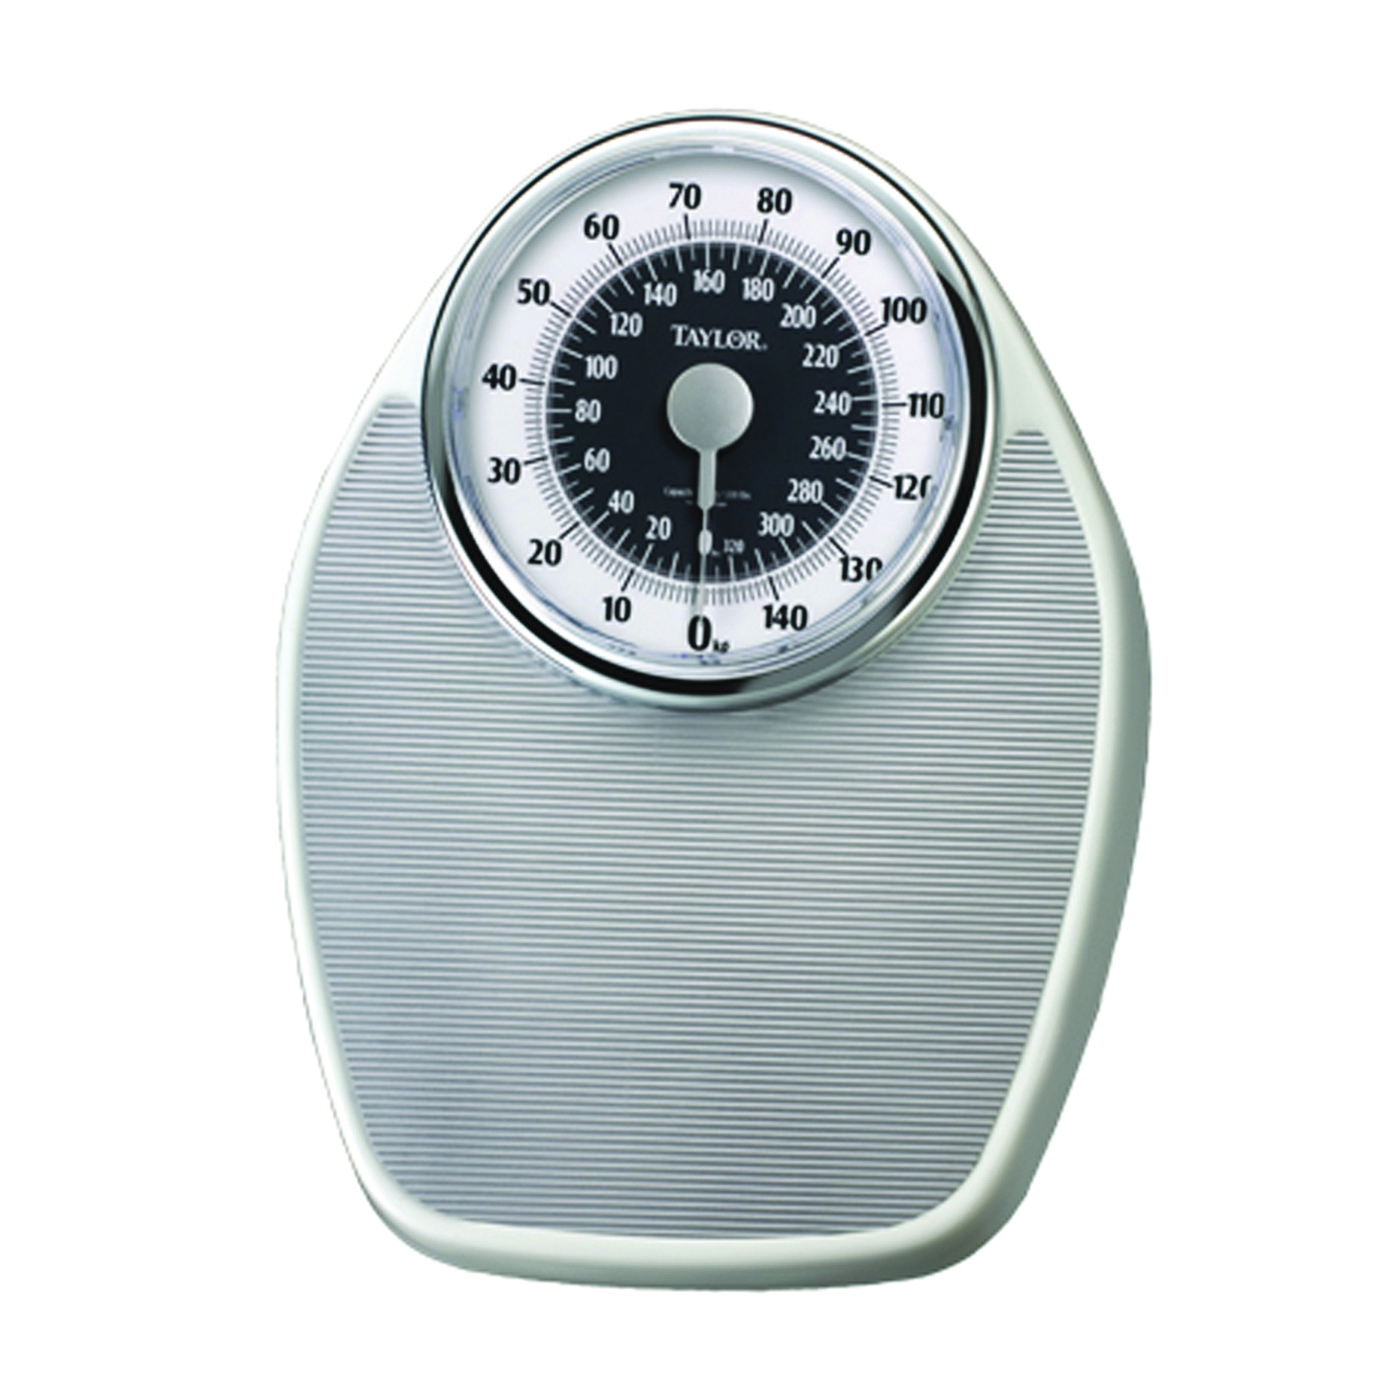 Picture of Taylor 1351ES Speedometer Scale, 330 lb Capacity, Analog Display, Steel Housing Material, Silver, 7-1/4 in OAW